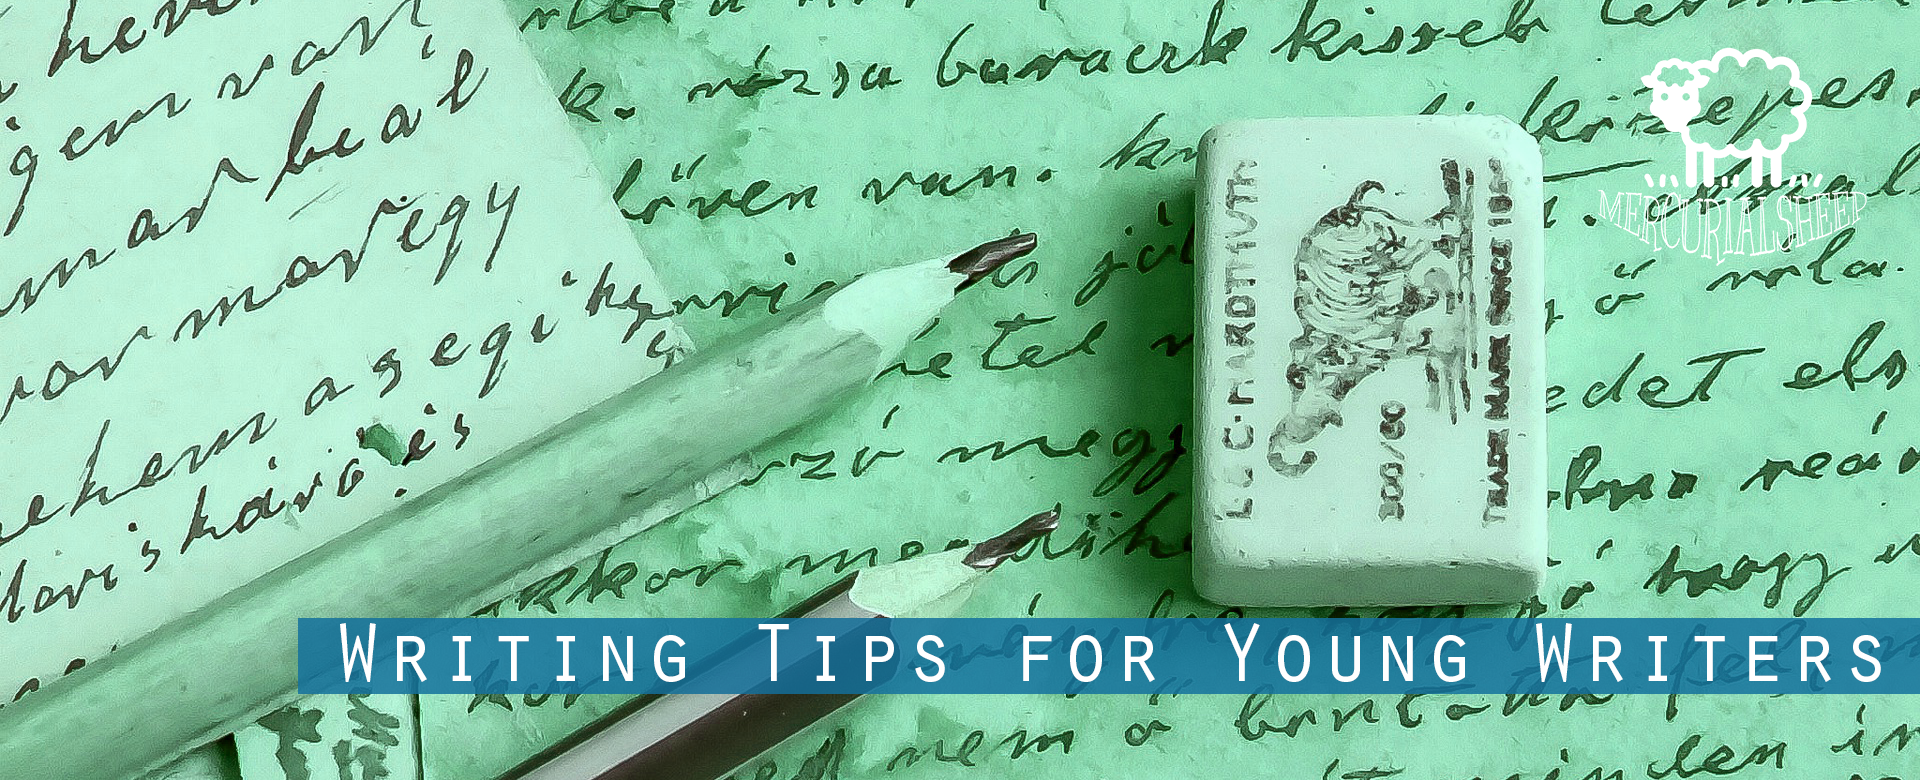 TIPS FOR YOUNG WRITERS